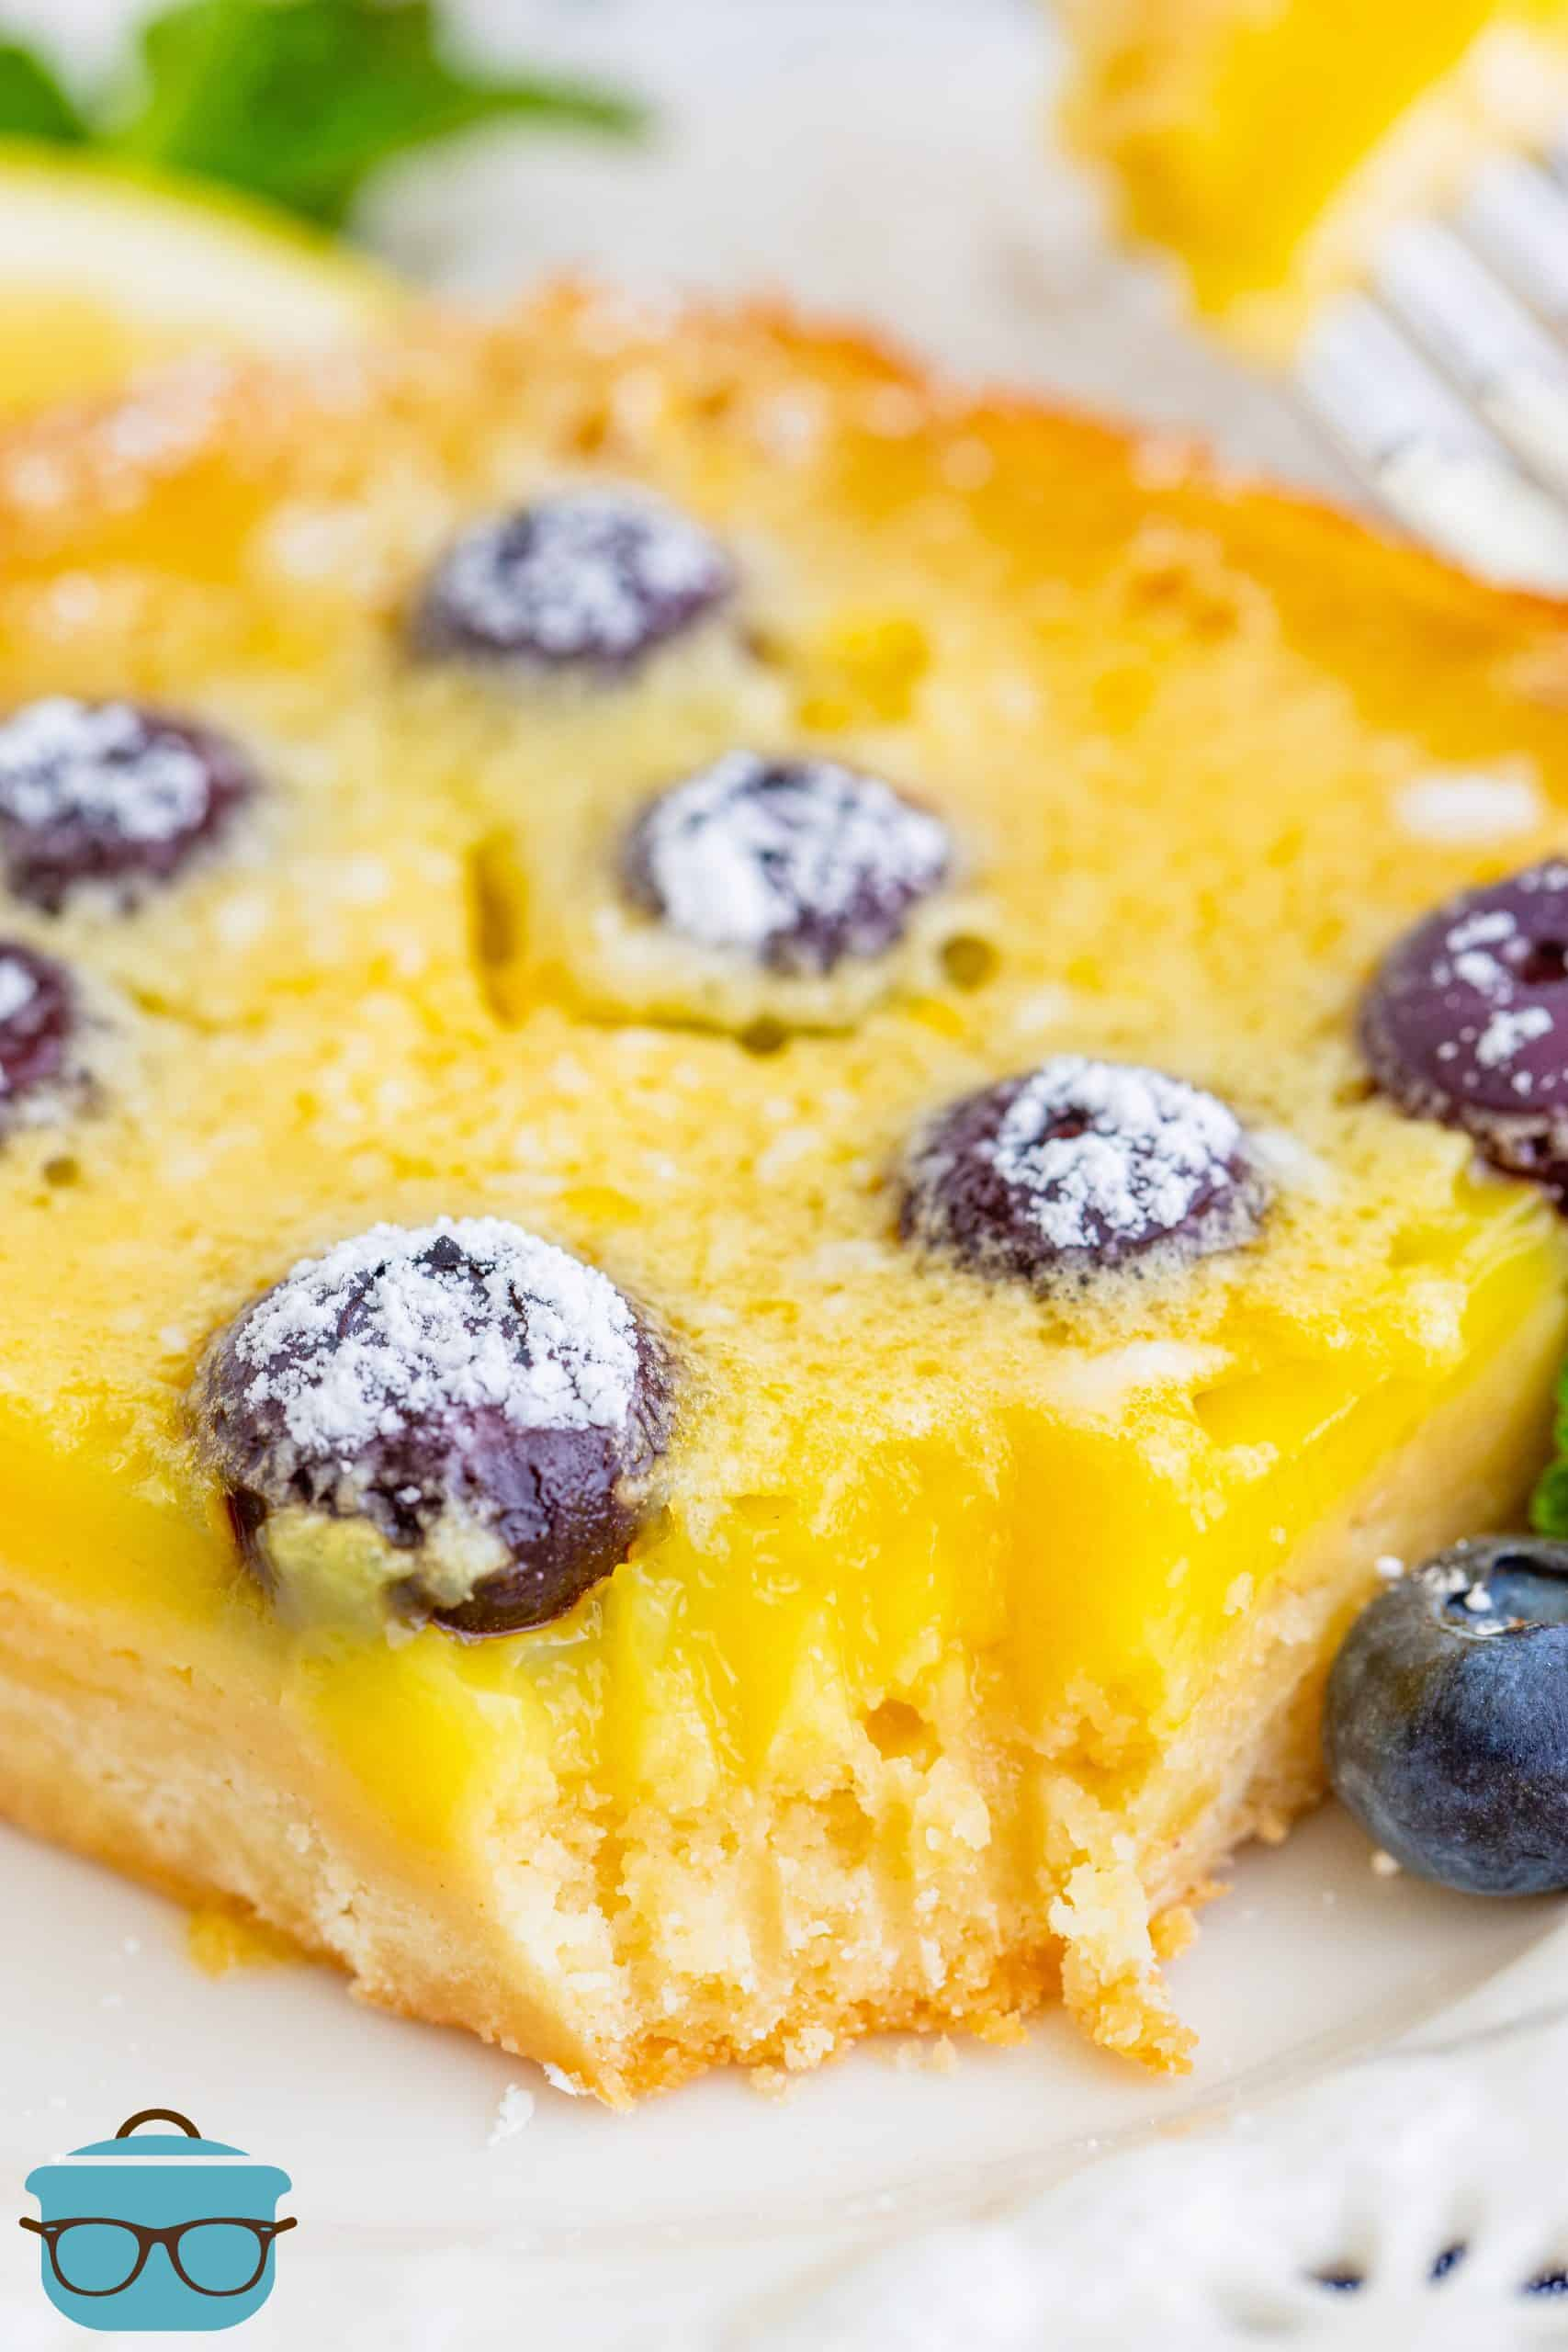 Blueberry Lemon Bar on white plate close up with bite taken out of it.